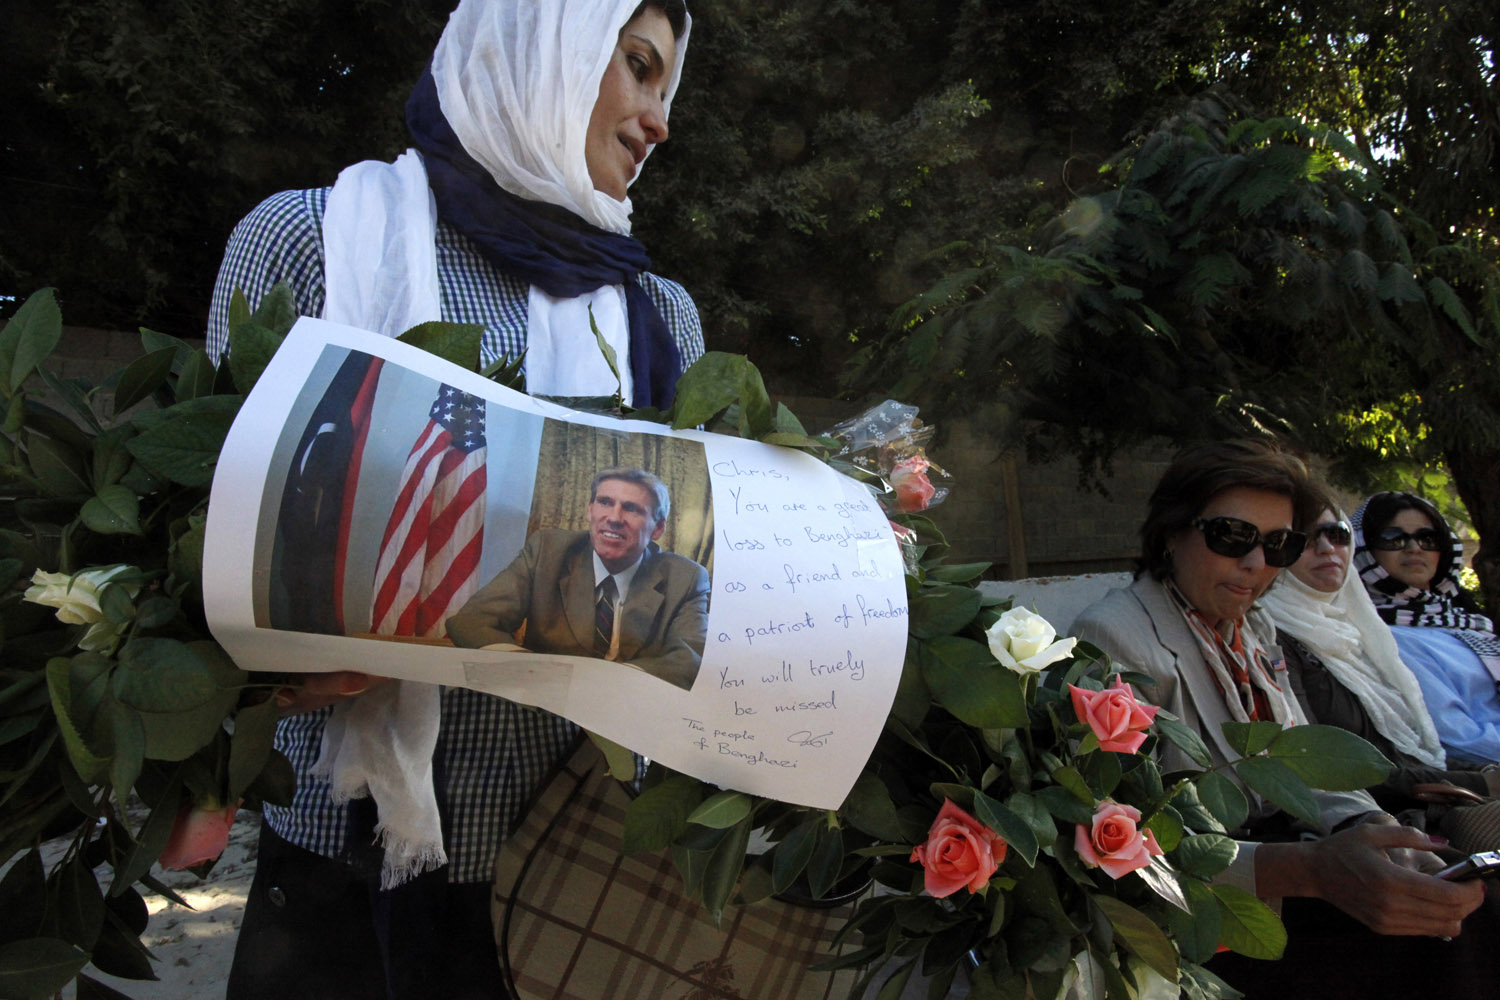 Sept. 17, 2012. A Libyan woman carries a wreath with a photo of U.S. Ambassador Chris Stevens on it as she and other Libyan and American women gather to pay their respect to the victims of the Sept. 11, 2012 attack on the U.S. consulate, in Benghazi, Libya.